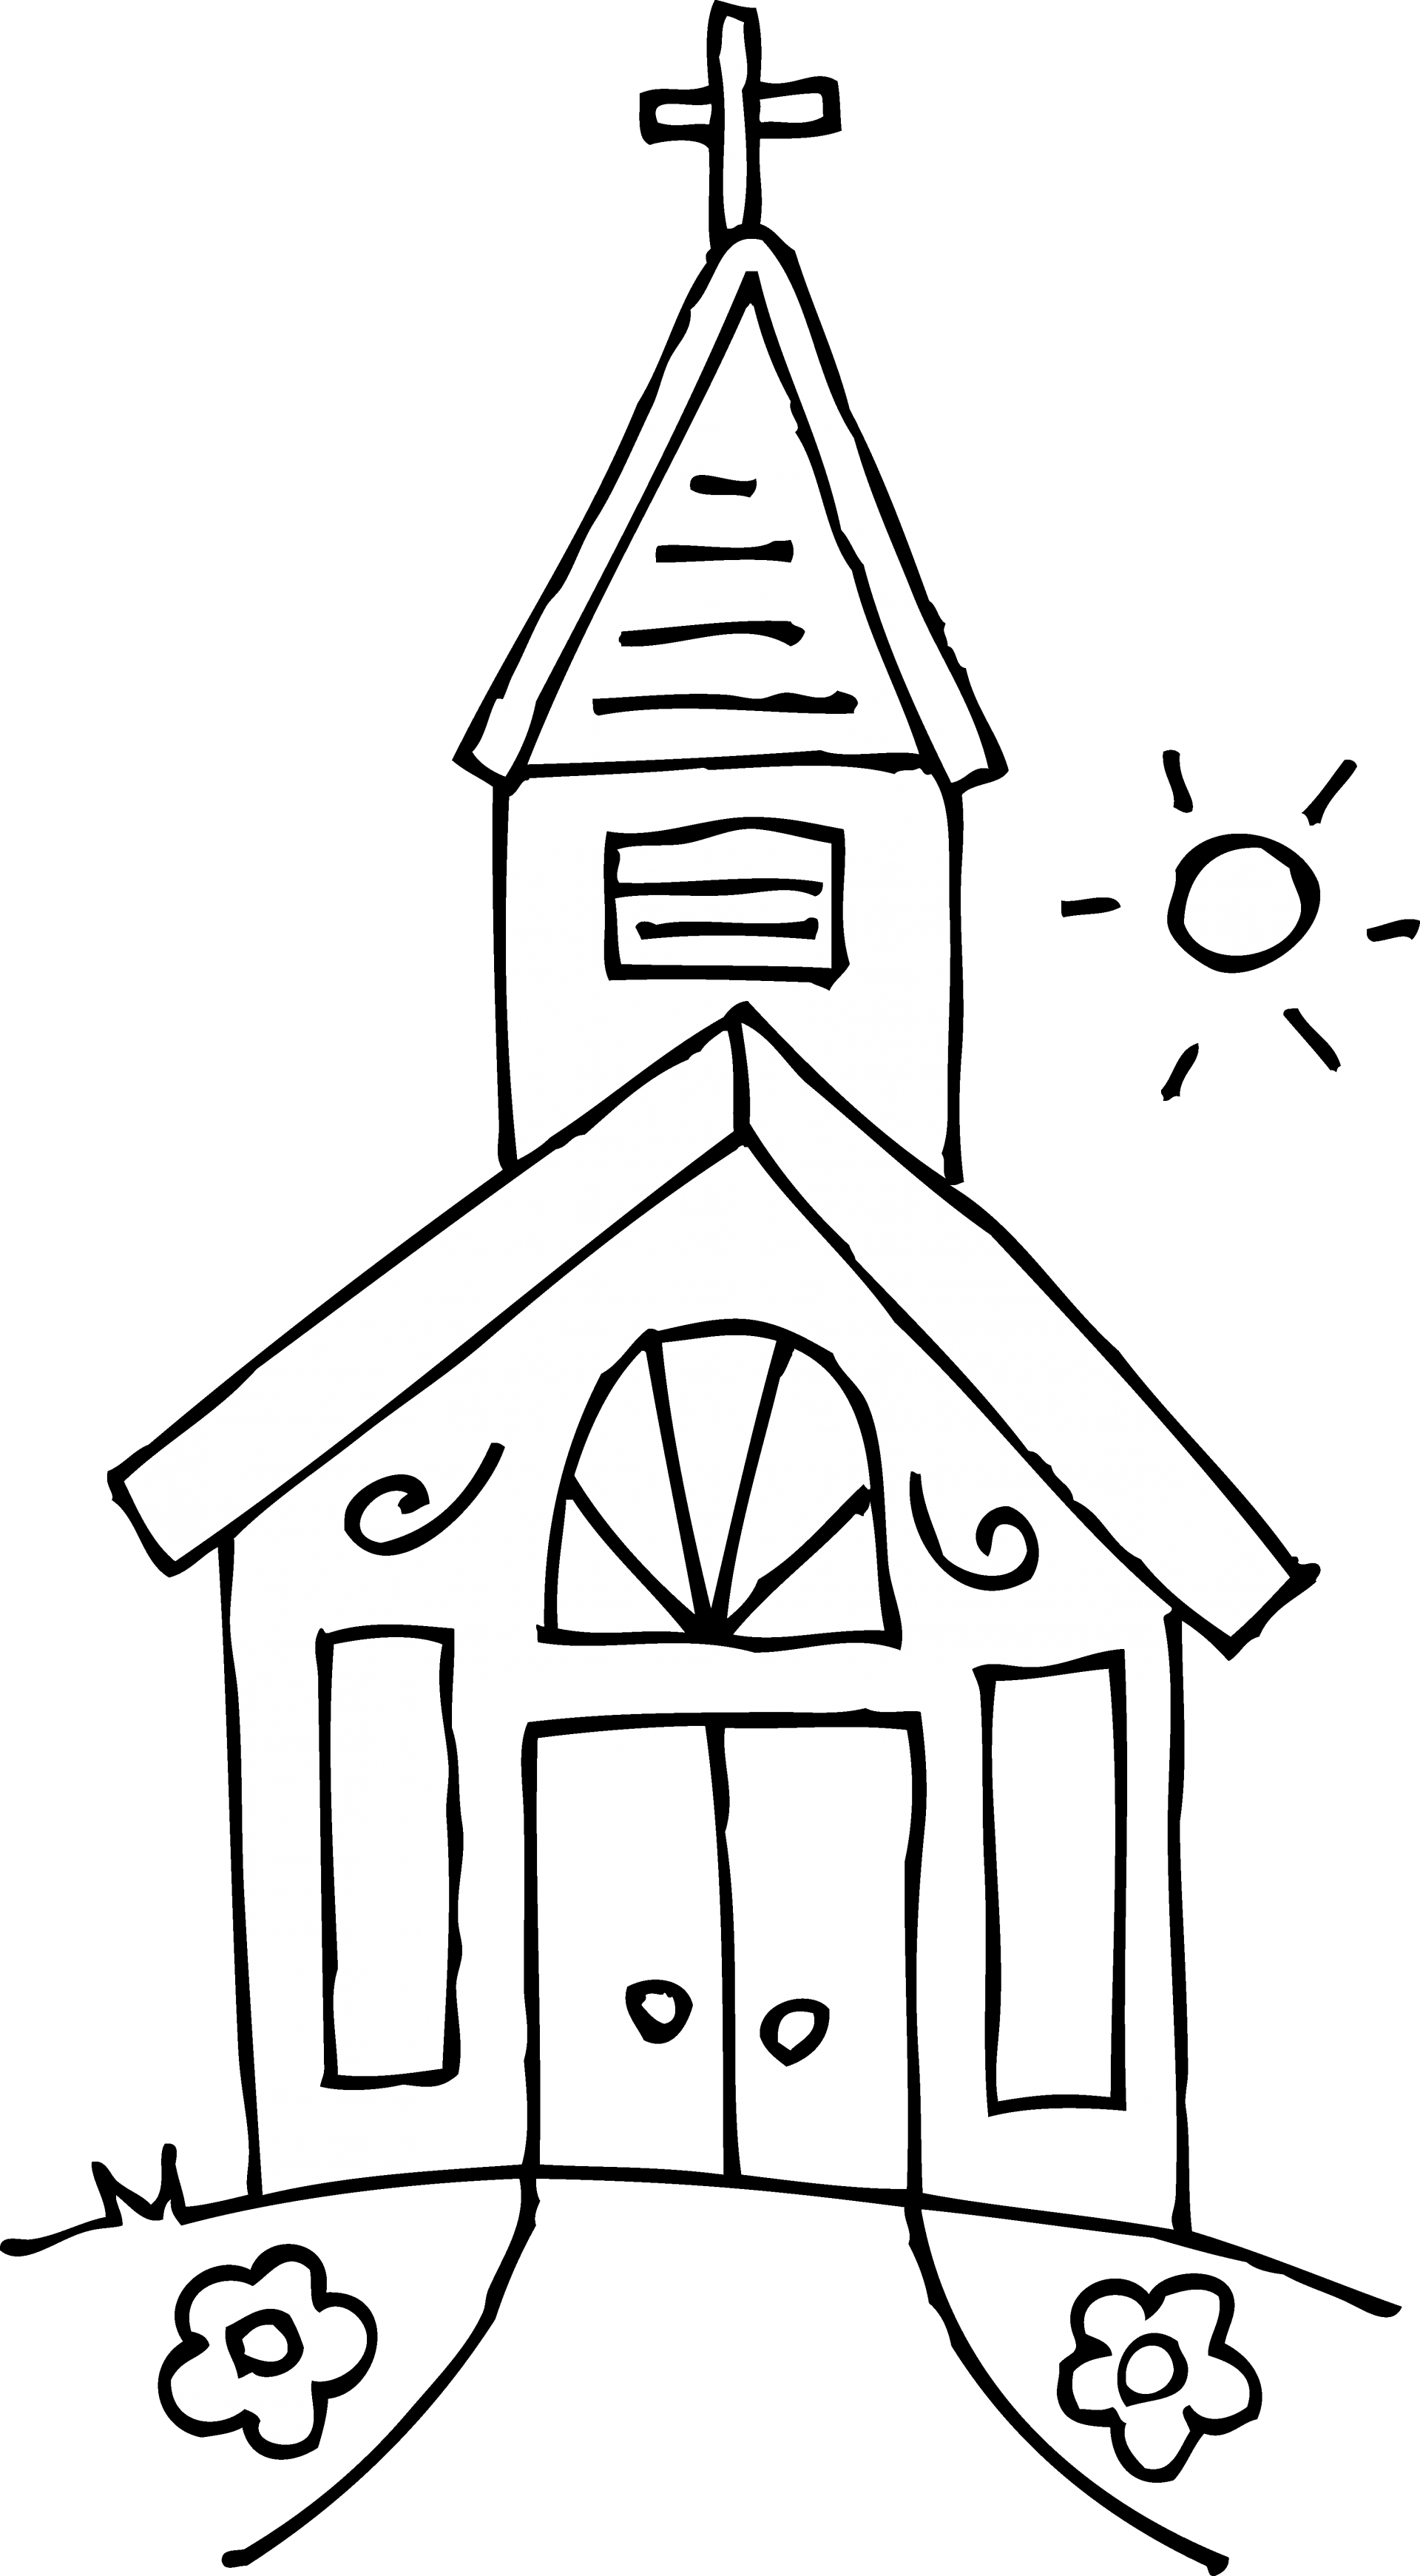 graphic library download Lds clipart building. Church coloring pages free.